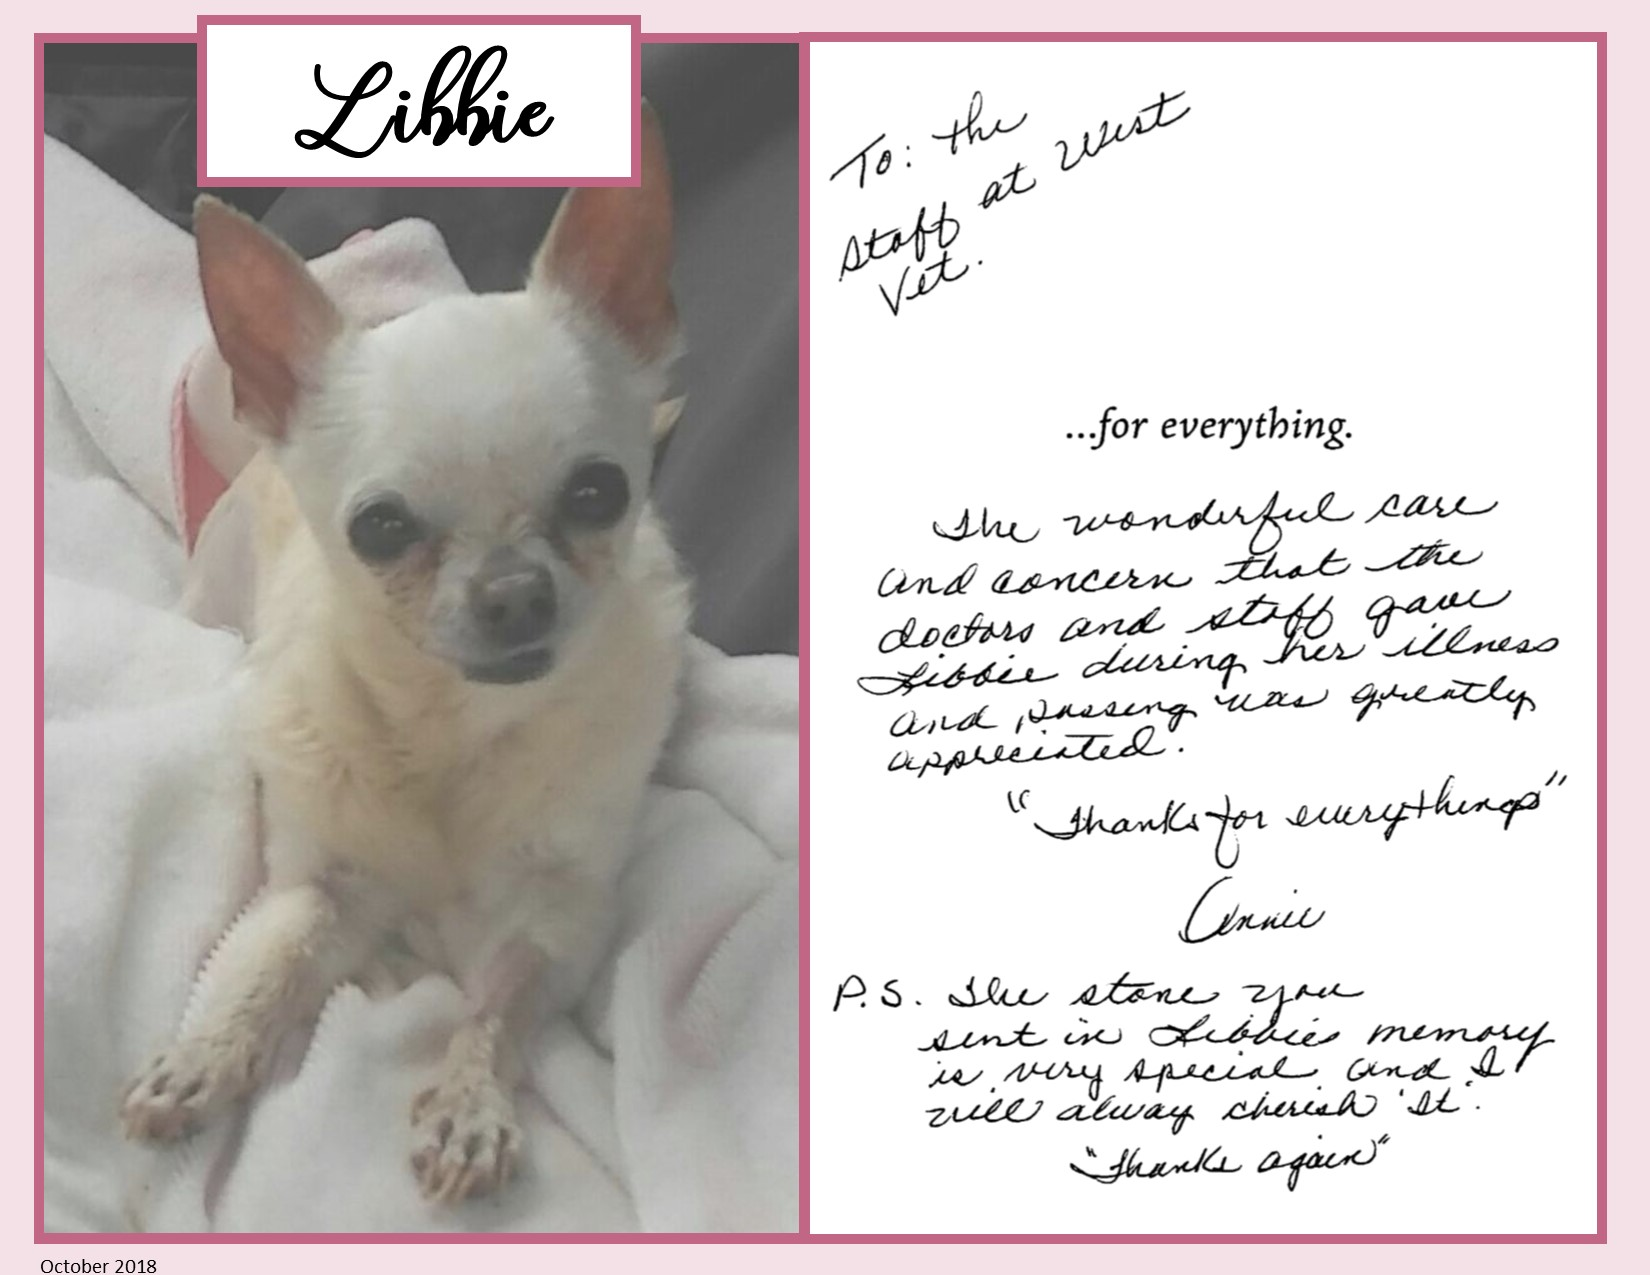 hight resolution of libbie lung